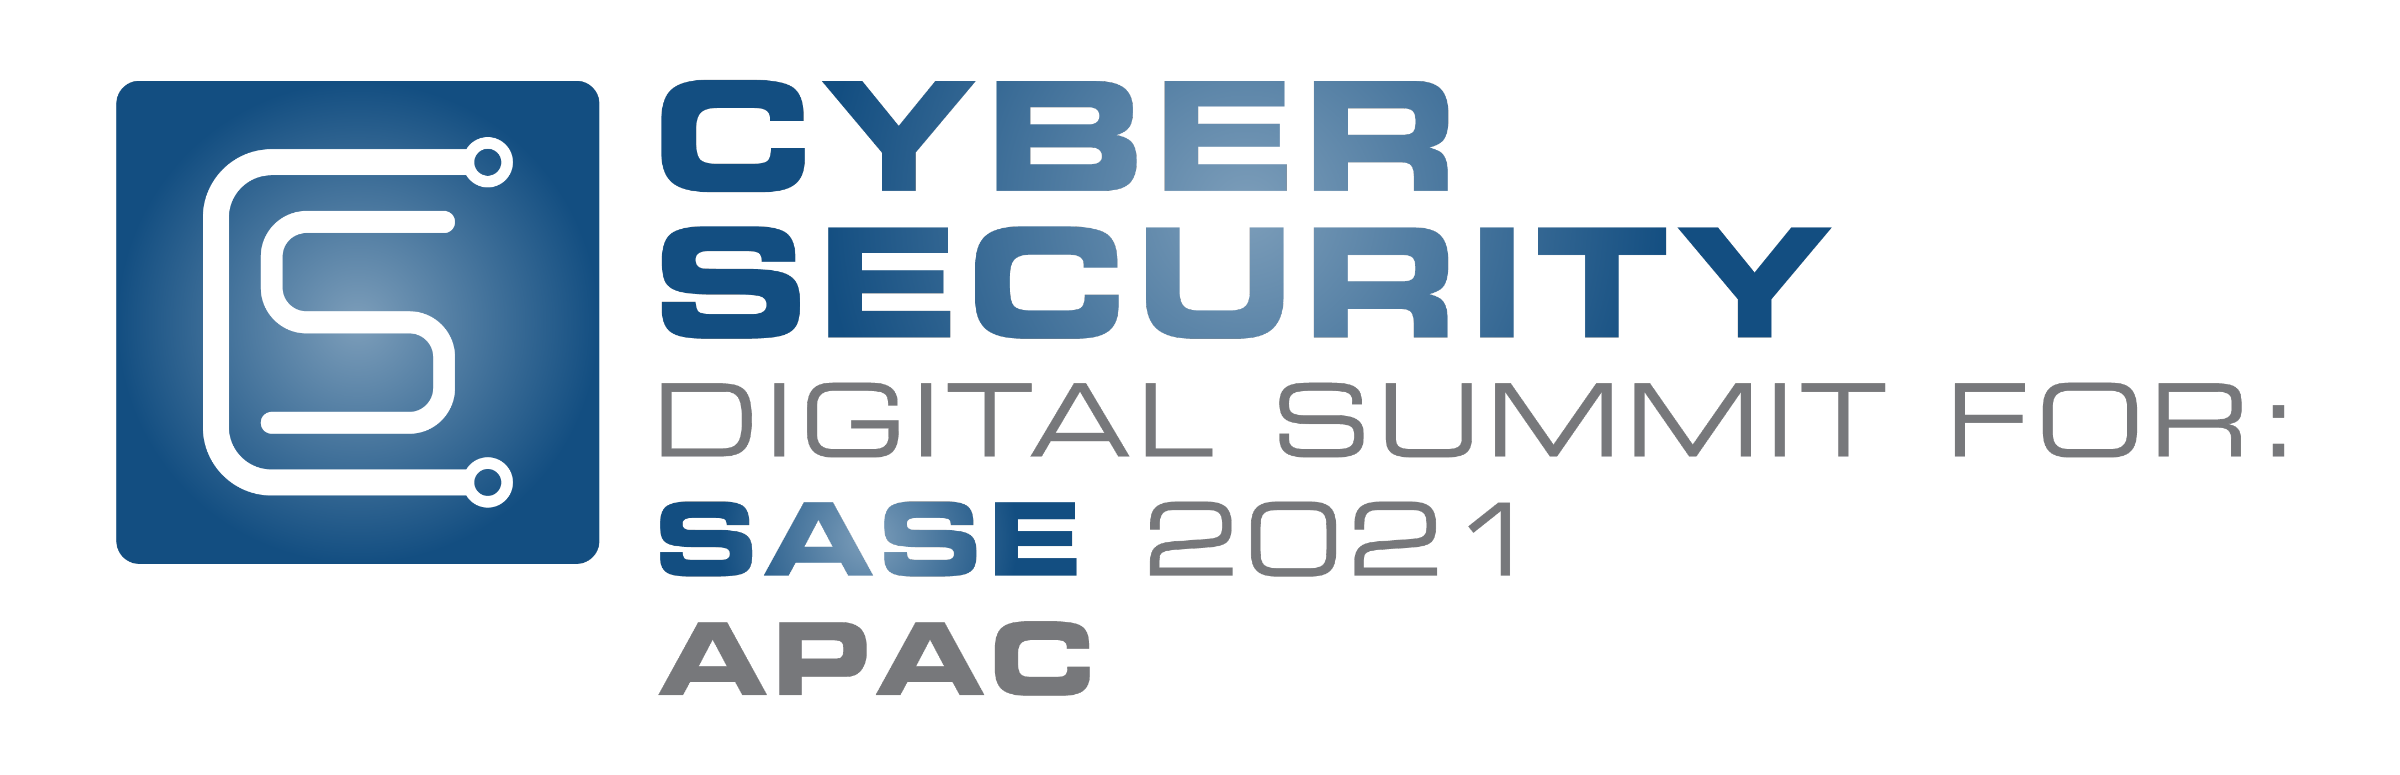 Cyber Security Digital Summit: SASE APAC 2021